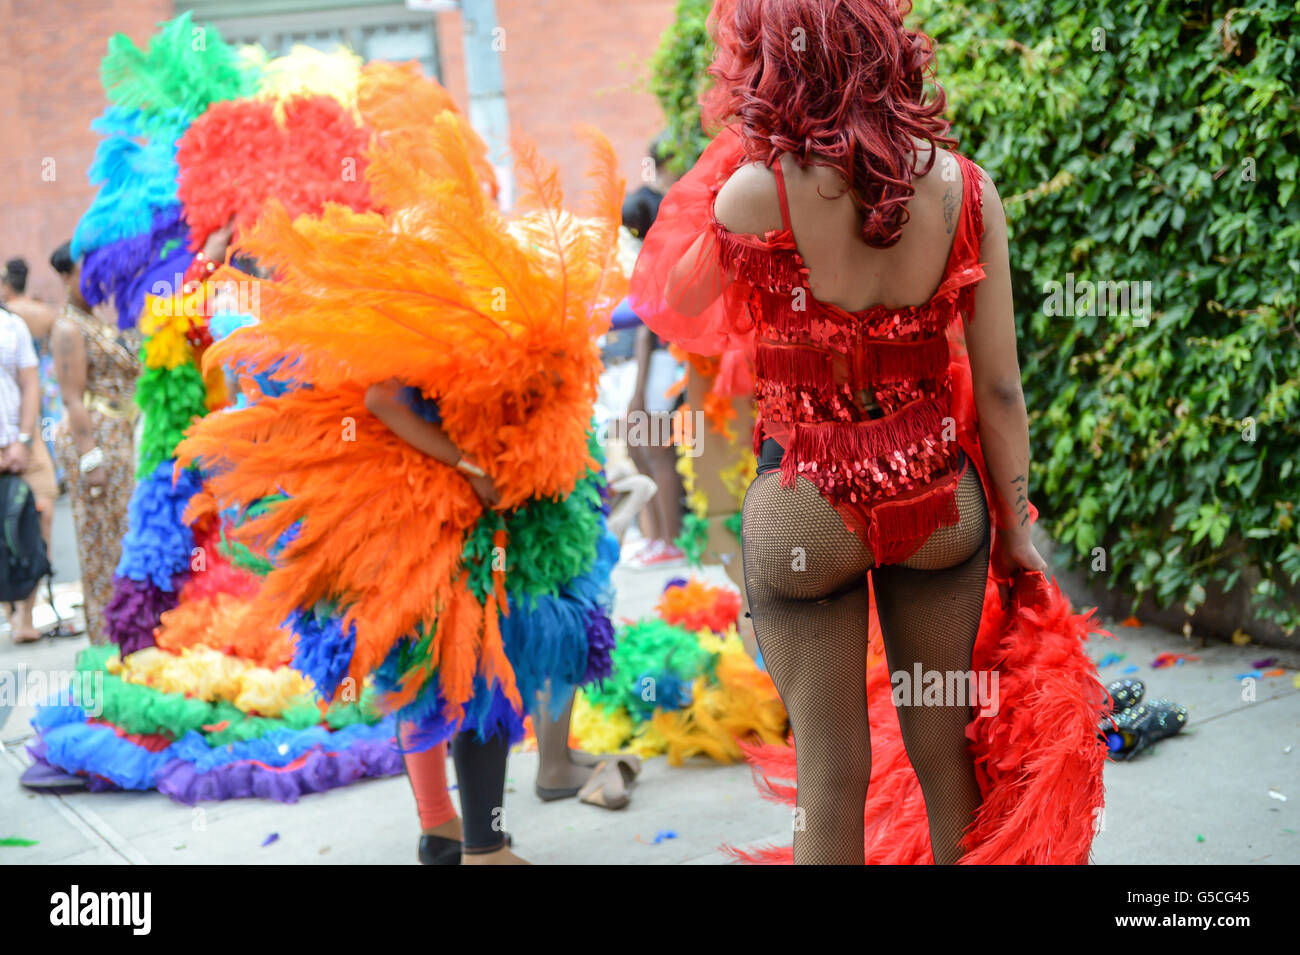 NEW YORK CITY - JUNE 30, 2013: Drag queens gather in Greenwich Village during the annual gay pride event. - Stock Image